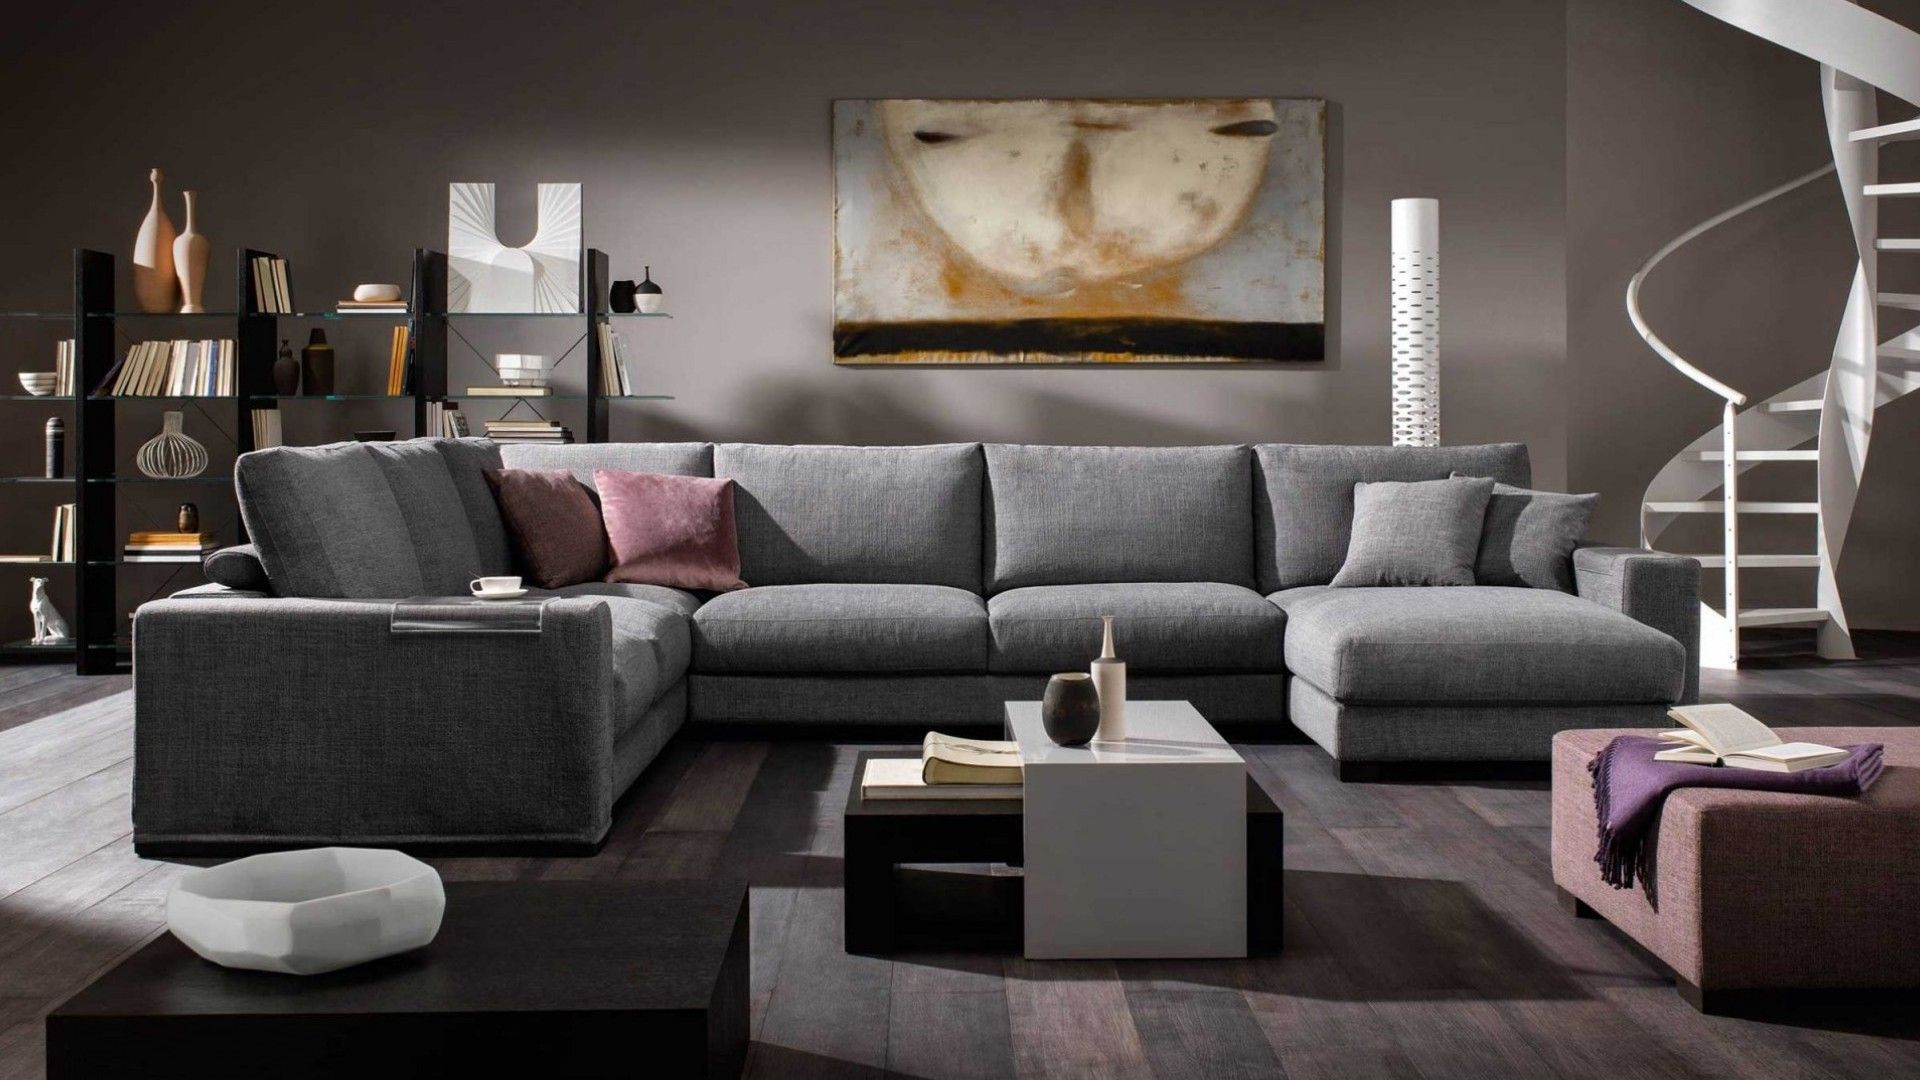 Modular sofa domino italian modern furniture from natuzzi italia